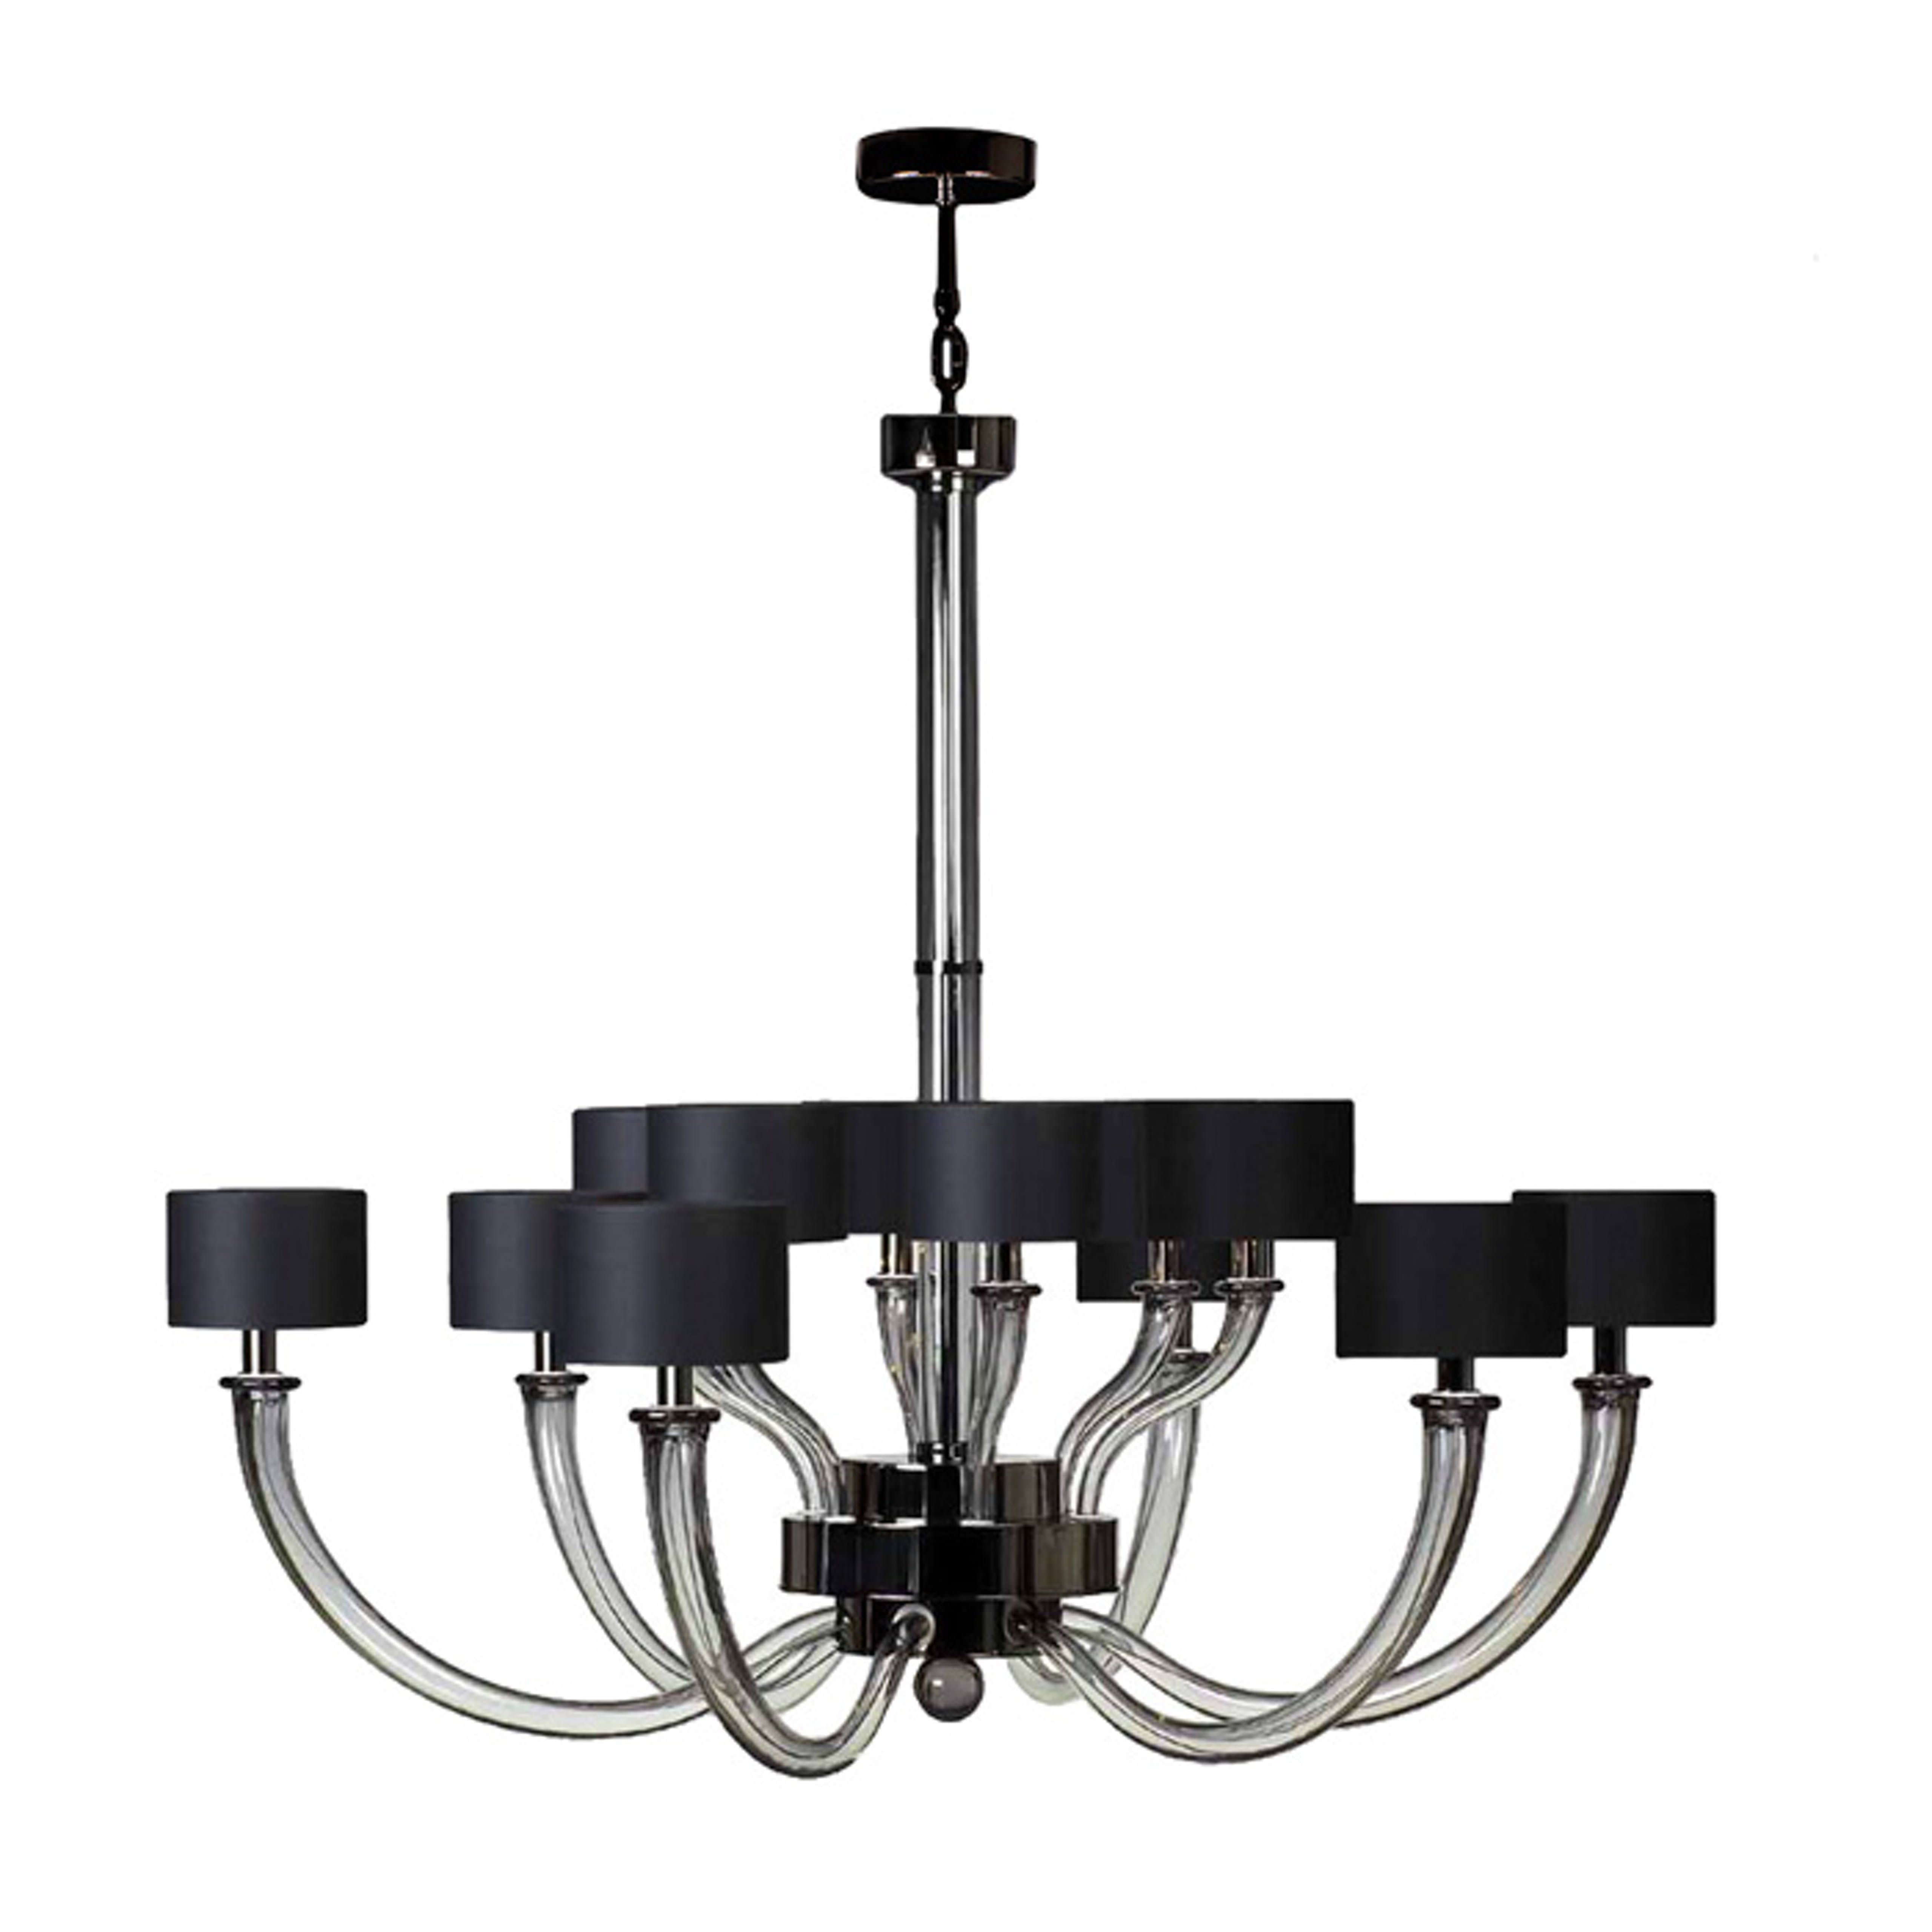 Donghia Fontana Chandelier 12 Arm Lighting Ceiling Wood Glass Chandelier Cool Chandeliers Classic Lighting